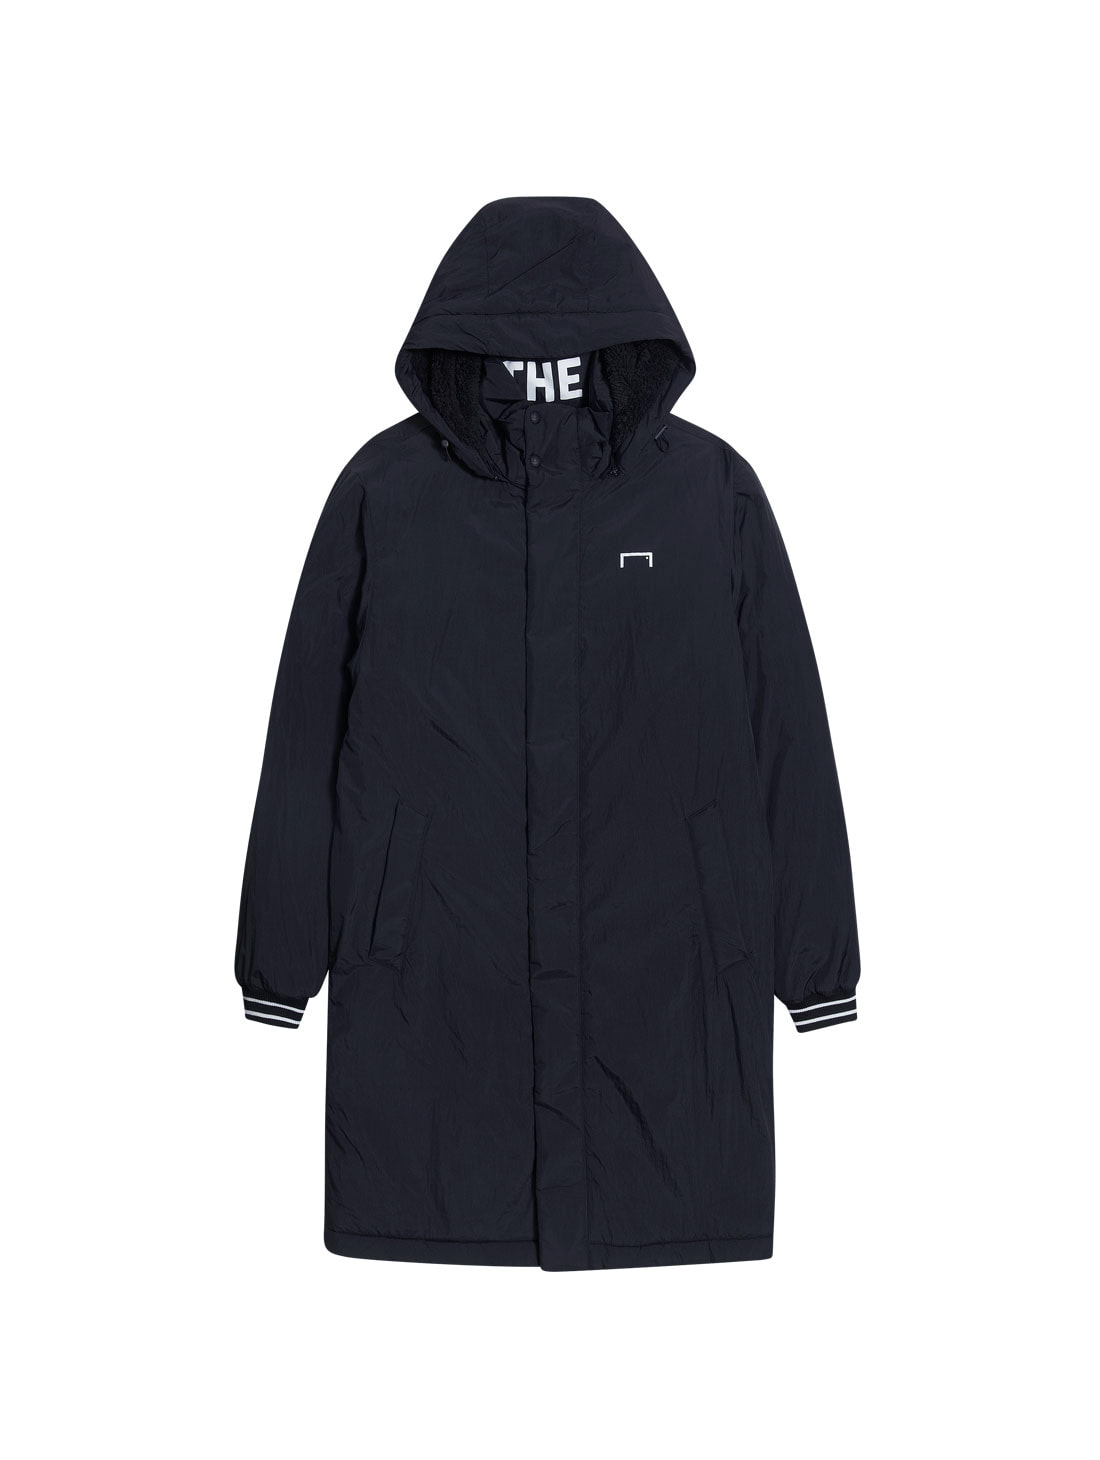 GOALSTUDIO BIG LOGO LONG PARKA - BLACK